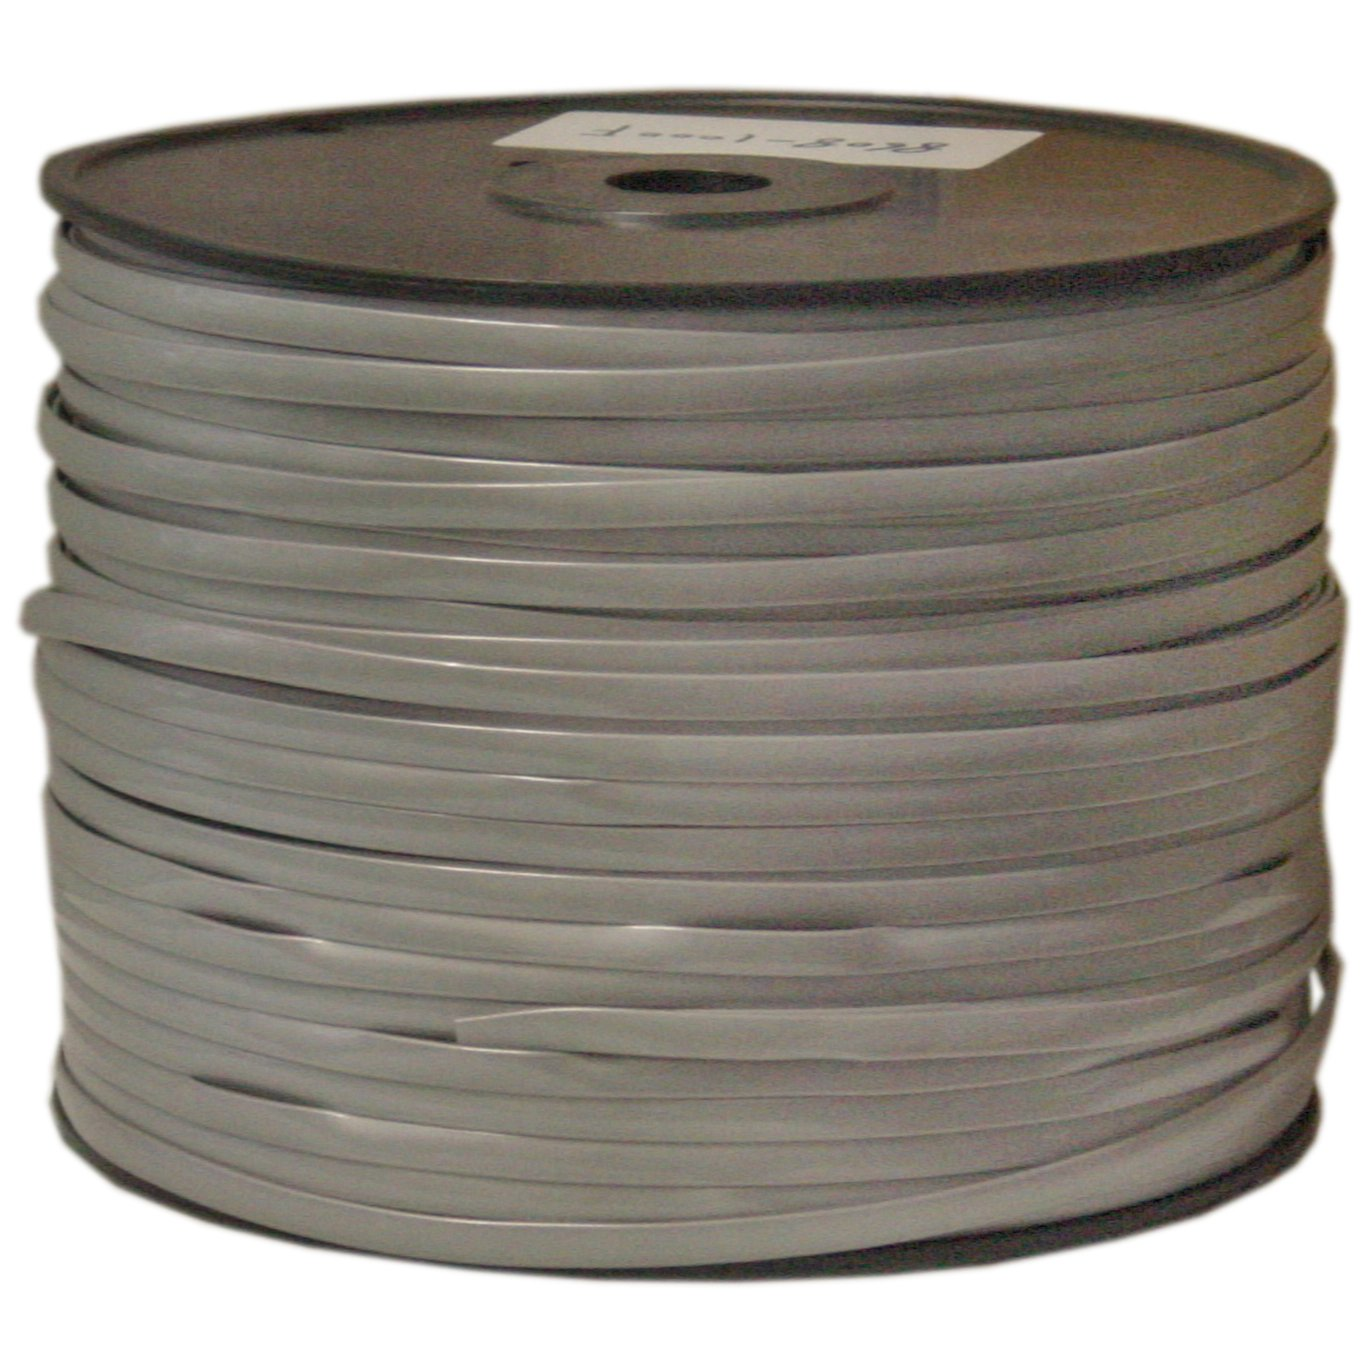 CableWholesale Bulk Phone Cord, Silver Satin, 28/8 (28 AWG 8 Conductor), Spool, 1000 foot